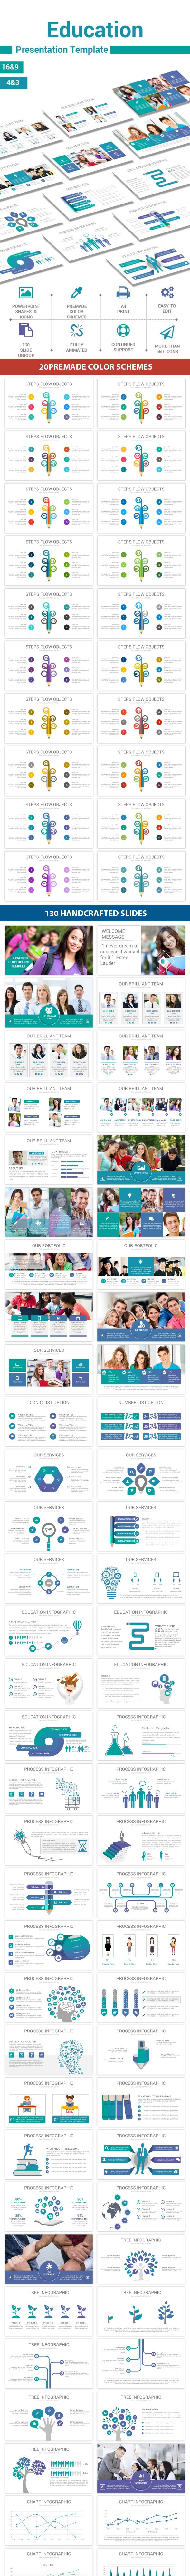 Education PowerPoint Presentation Template - PowerPoint Templates Presentation Templates